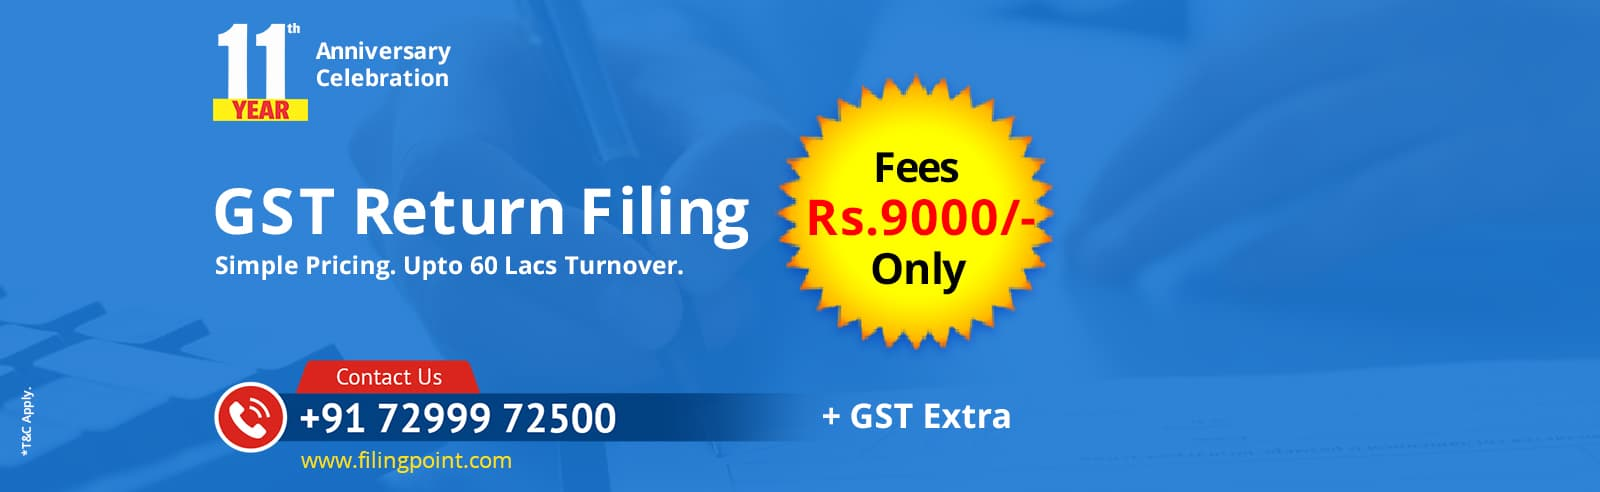 GST Filing Services Near Me Chennai Indira Nagar 6Th Street AMBATTUR O.T NEAR RAILWAY STATION